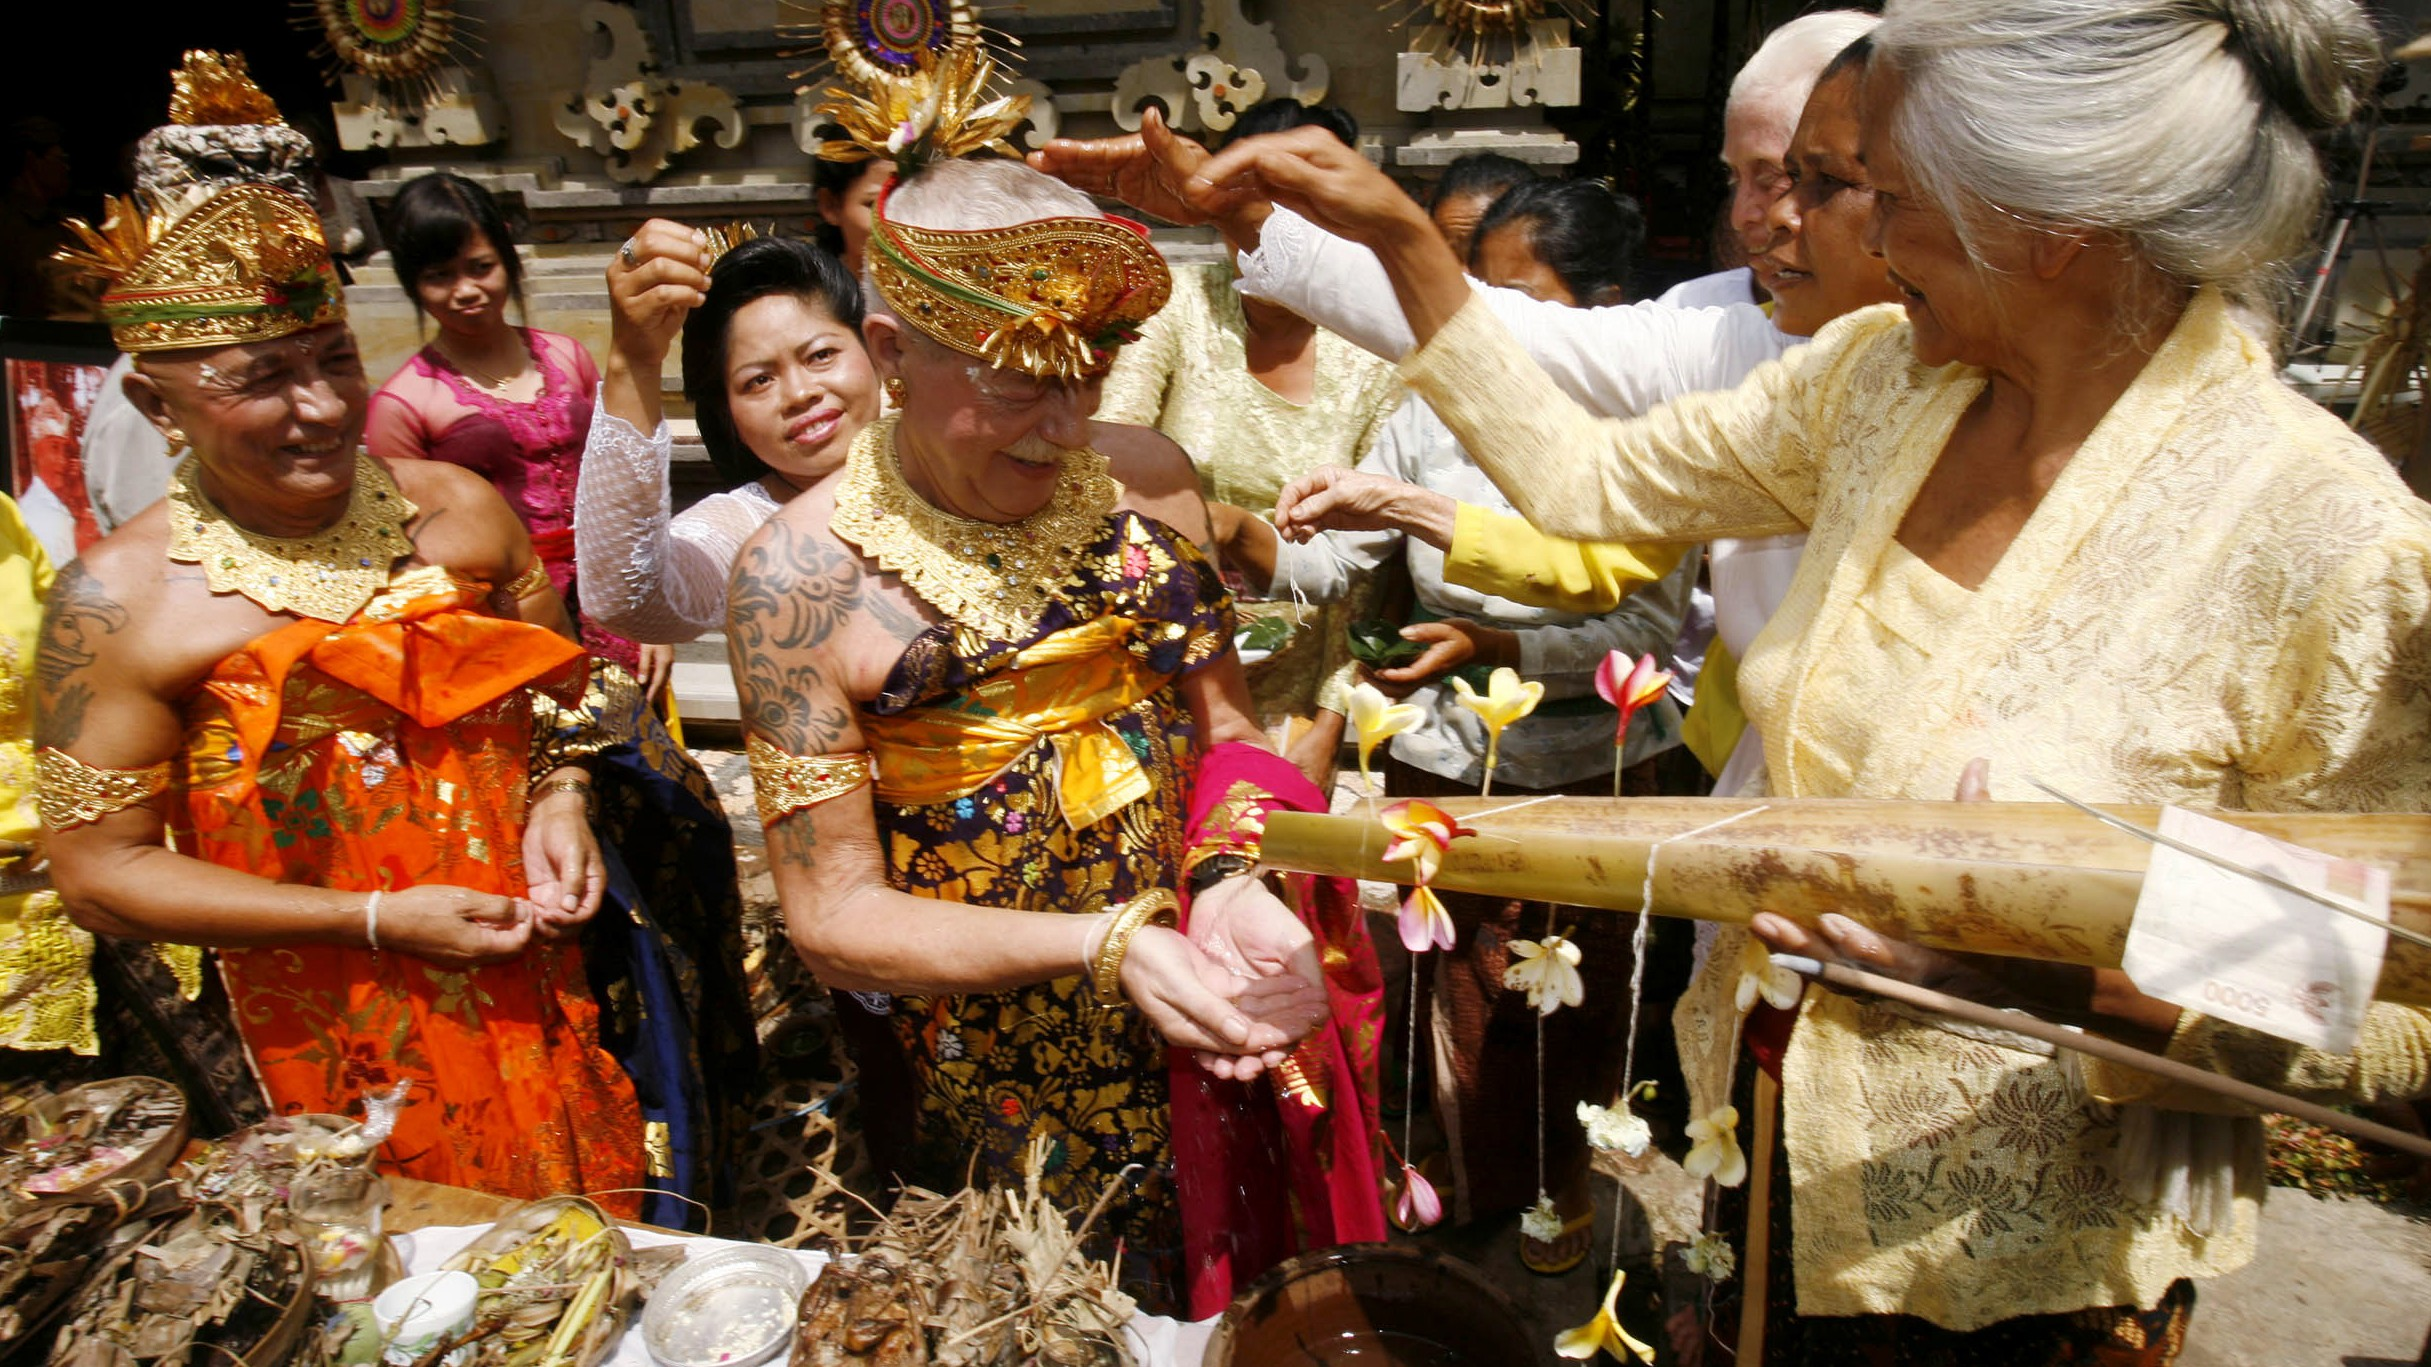 Holy water is sprinkled on Dutch gay couple Hendricus Johannes Deijkers and Christianus Huijbregts during their religion conversion ceremony in Bali